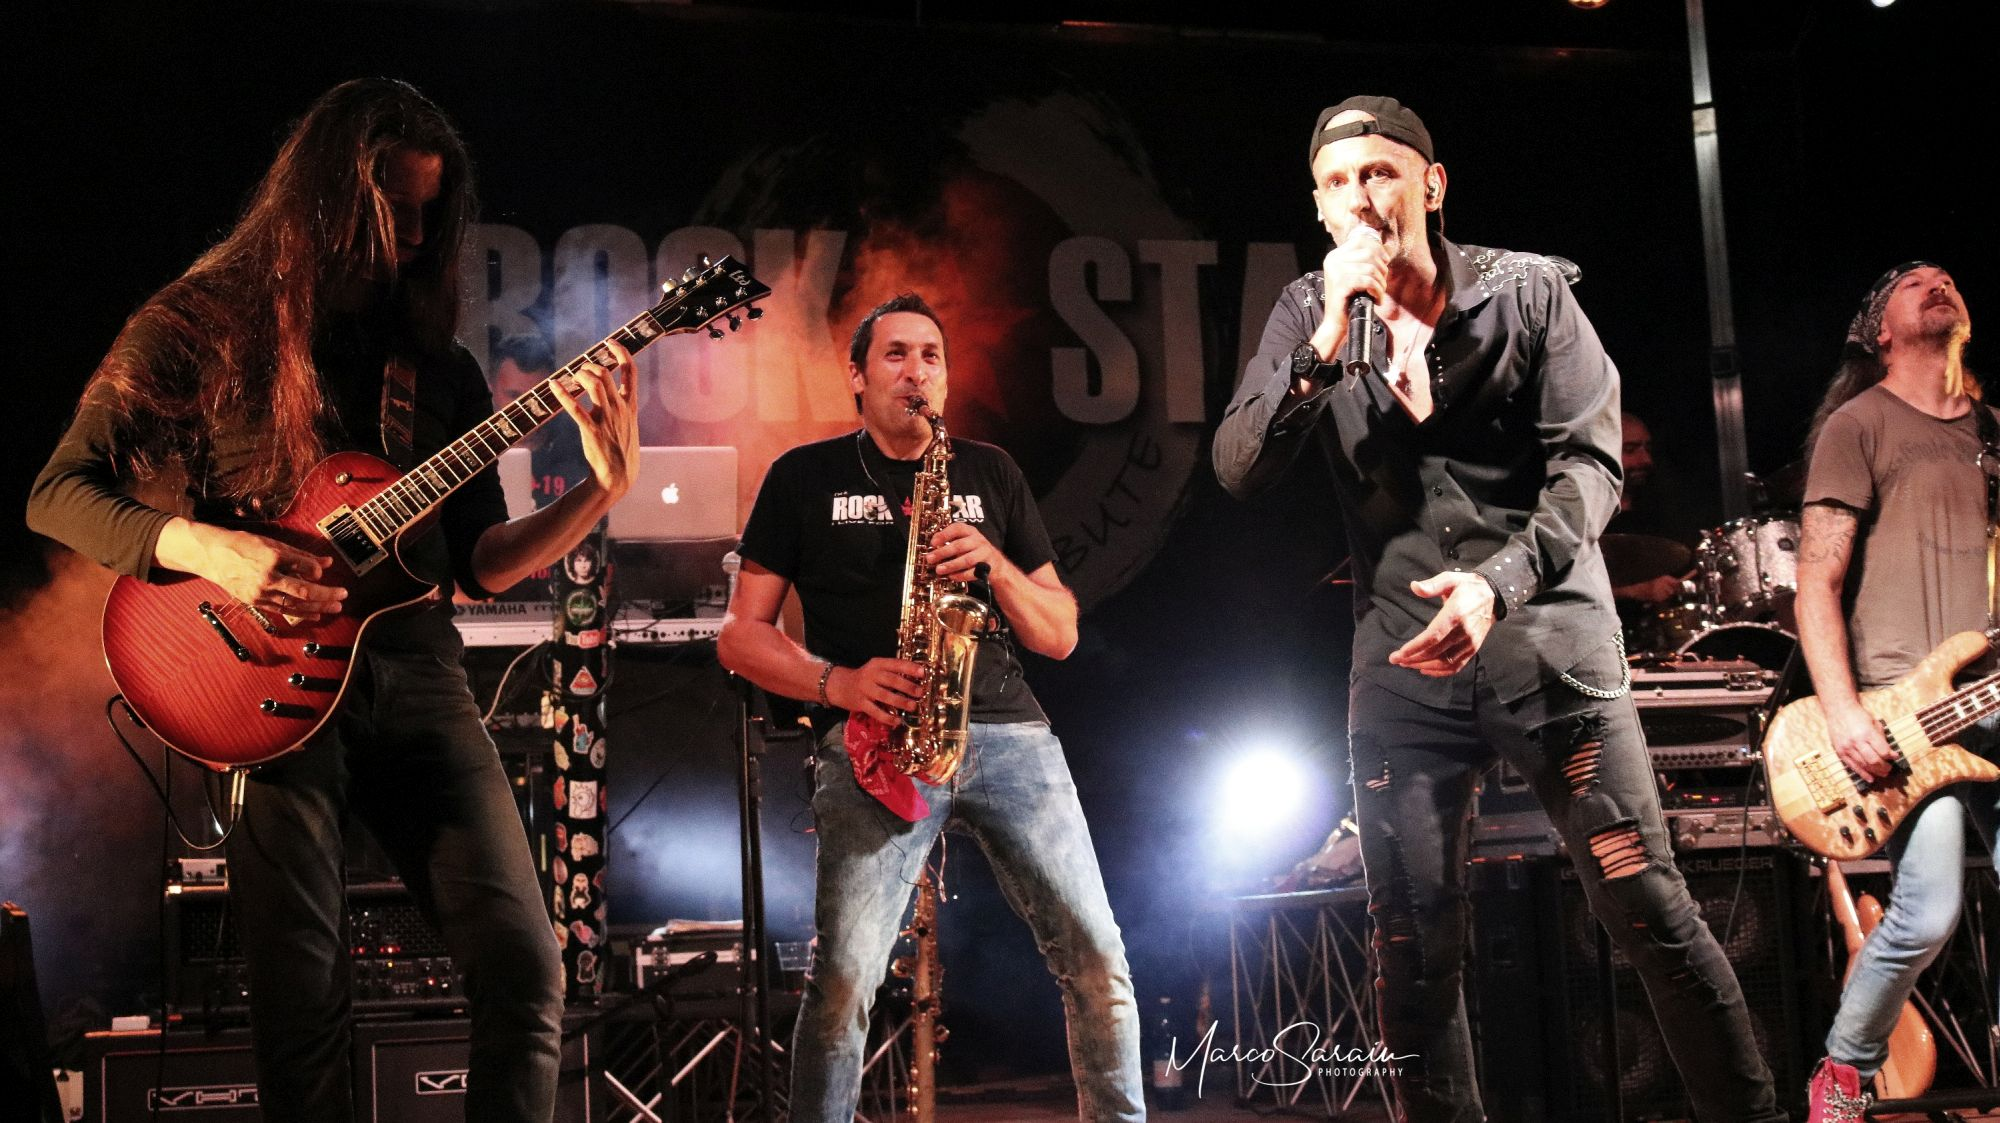 ROCK★STAR - Vasco Tribute